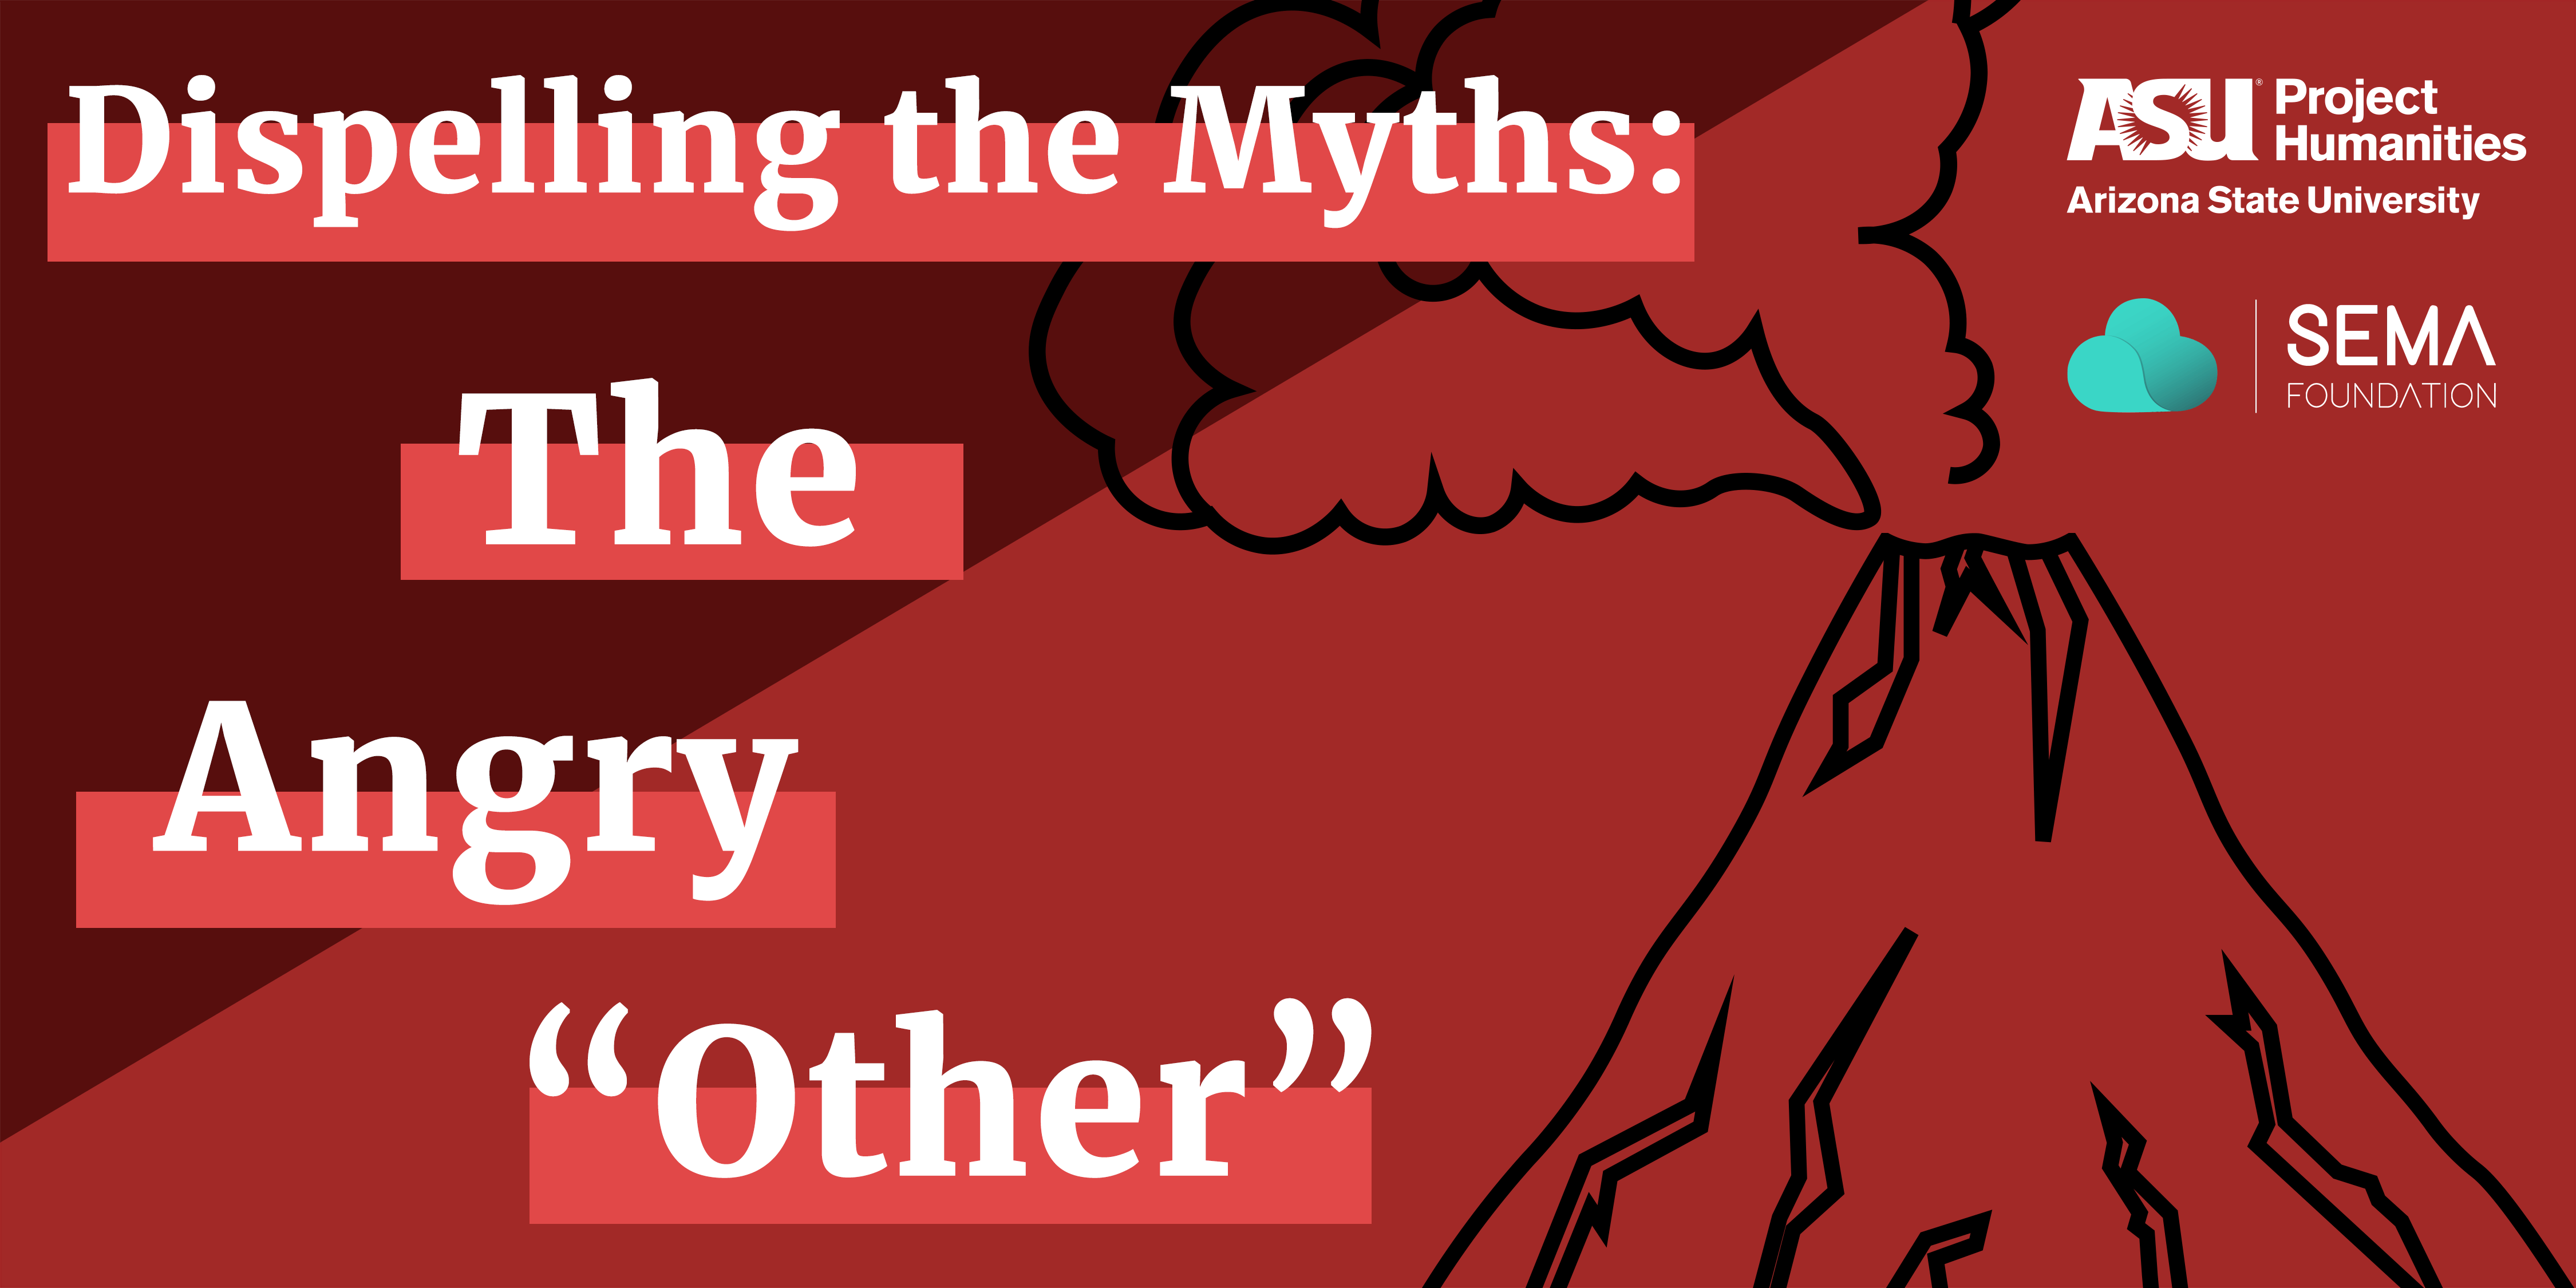 Dispelling the Myths: The Angry